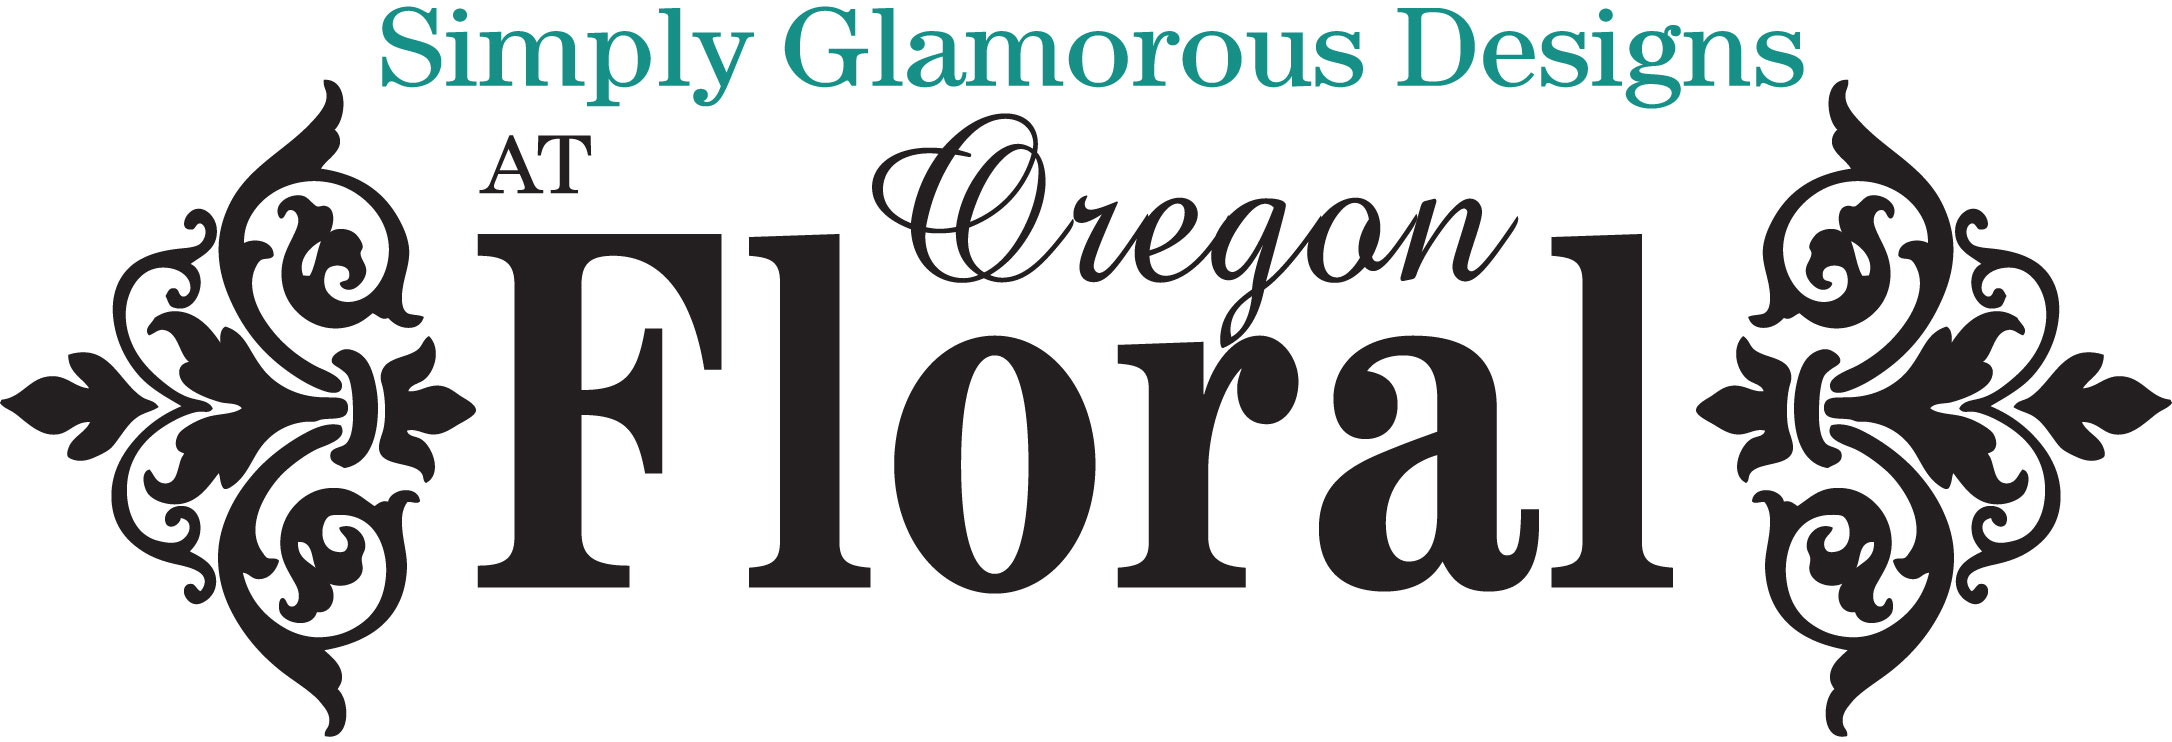 Simply Glamorous Designs At Oregon Floral - Oregon, WI 53575